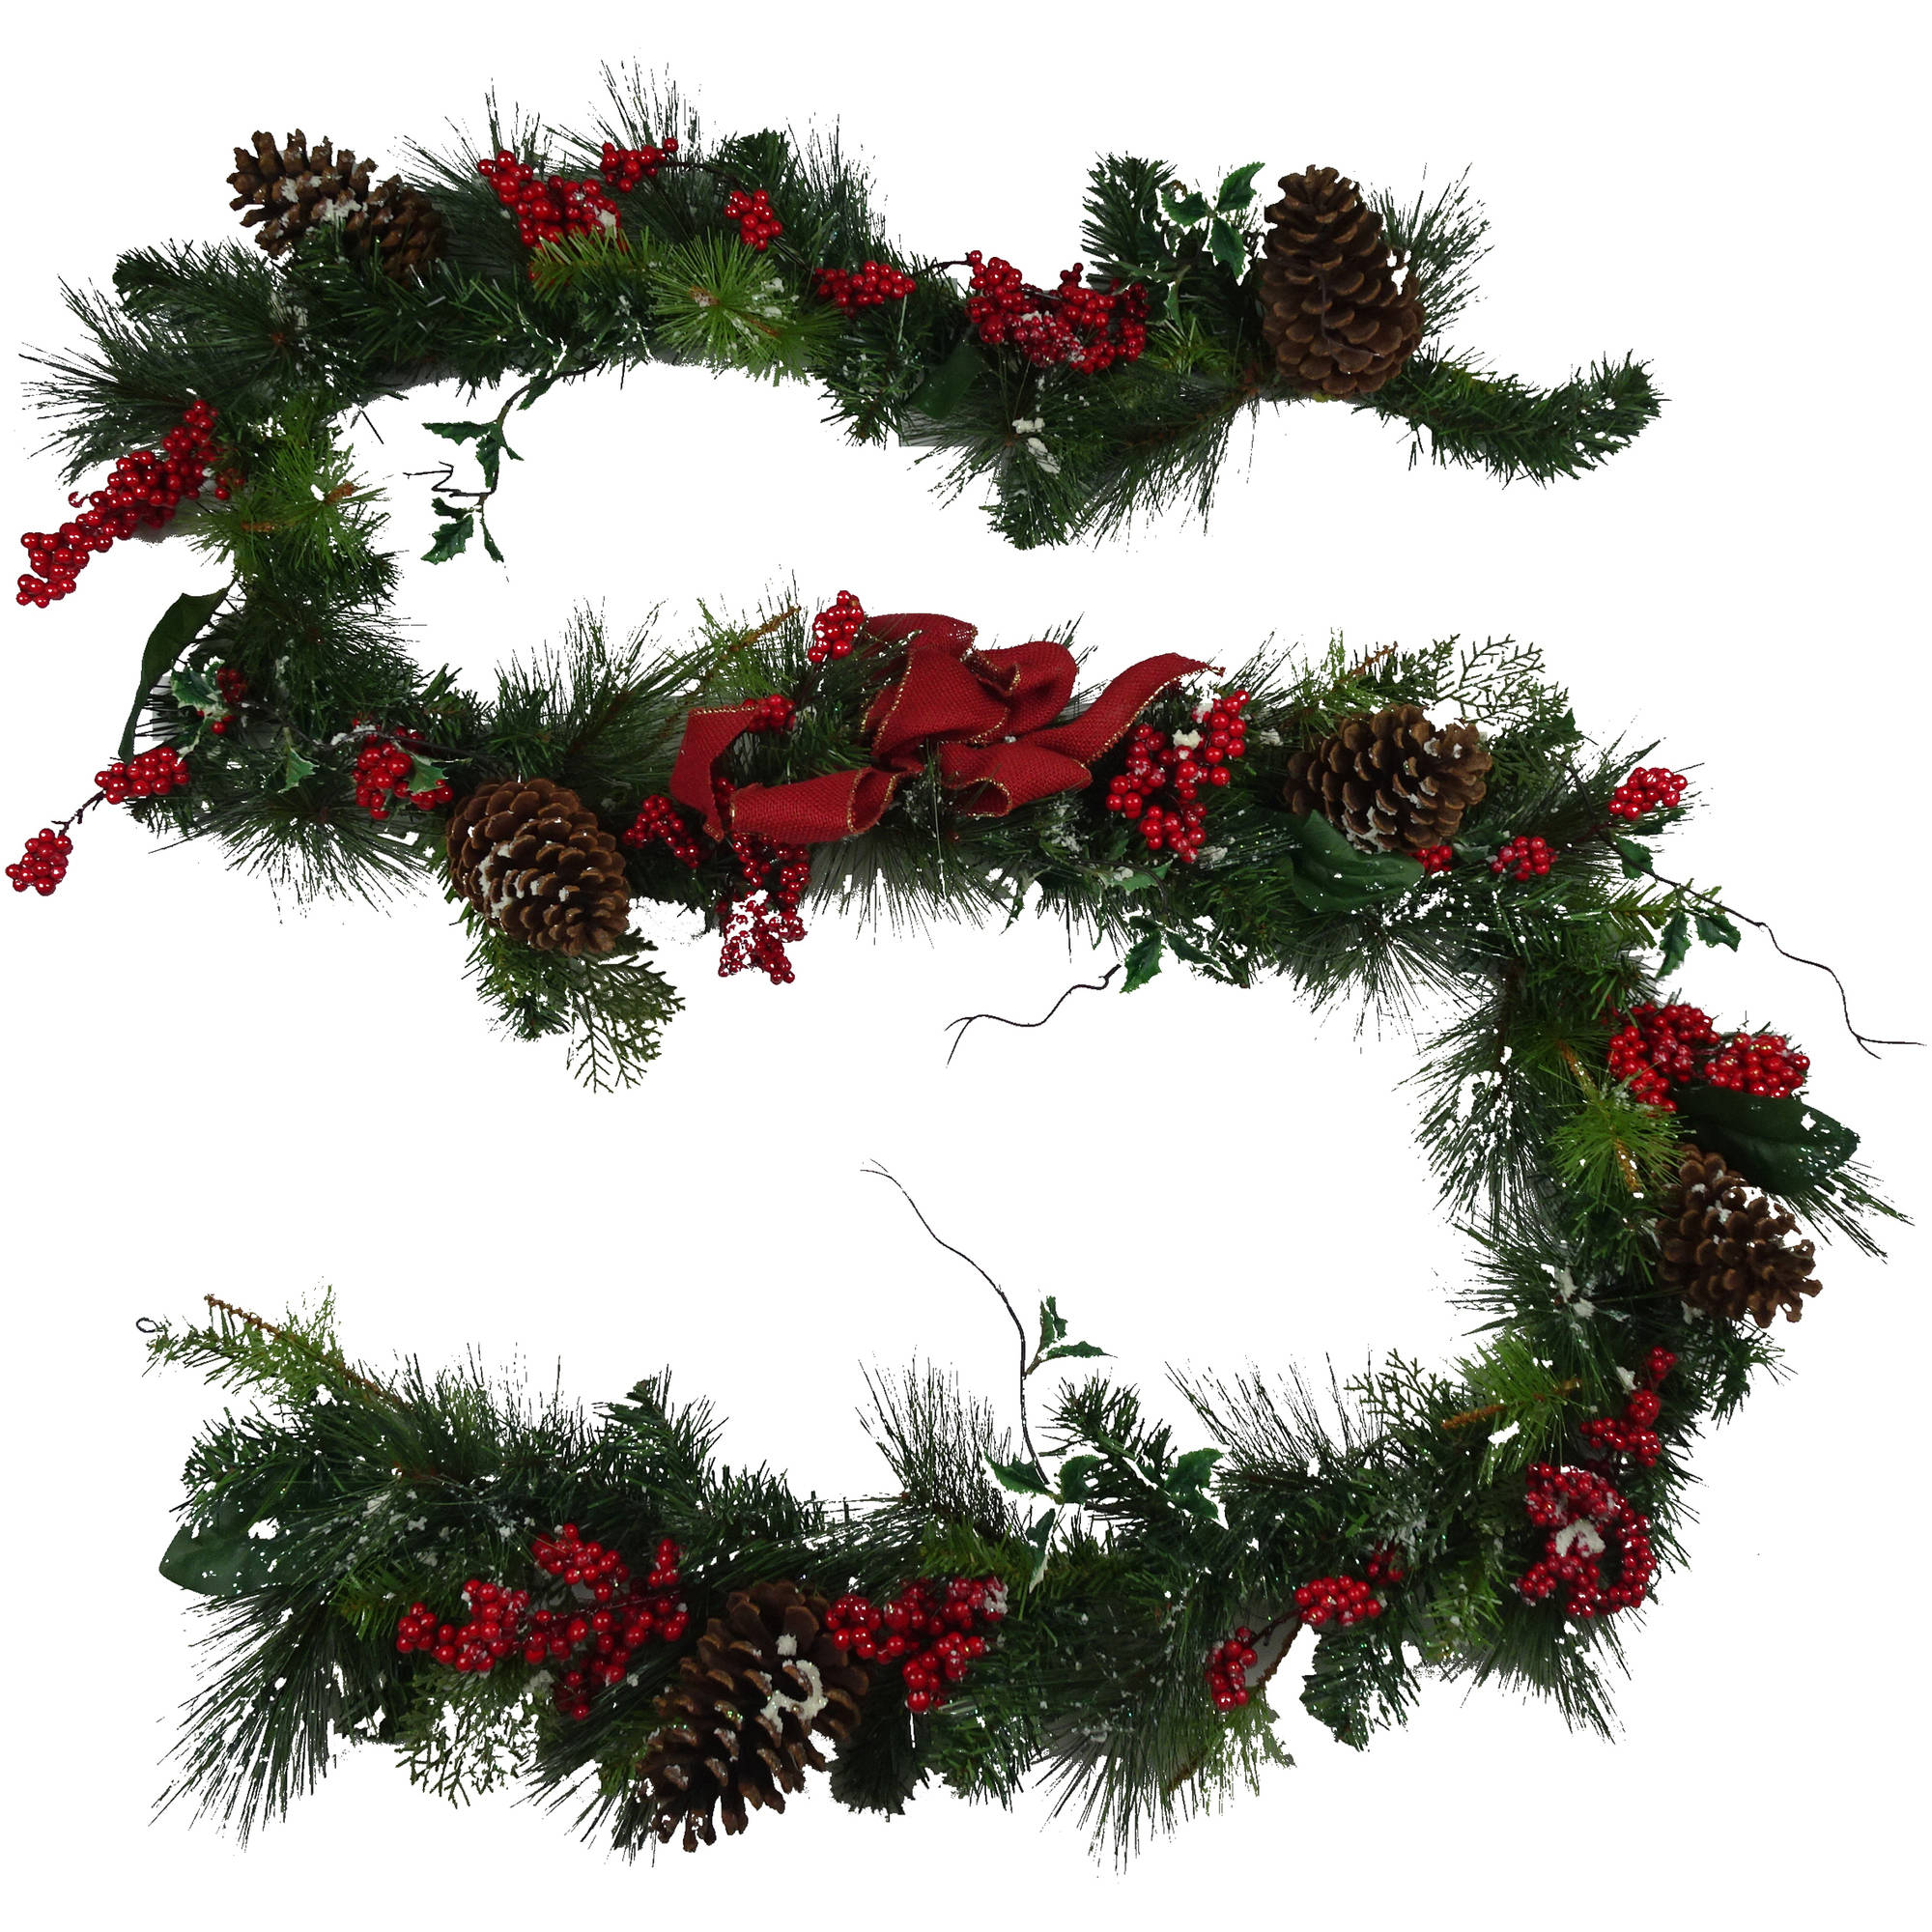 Holiday Time Christmas Decor 9' Deluxe Decorated Snowing Holly Berry Garland